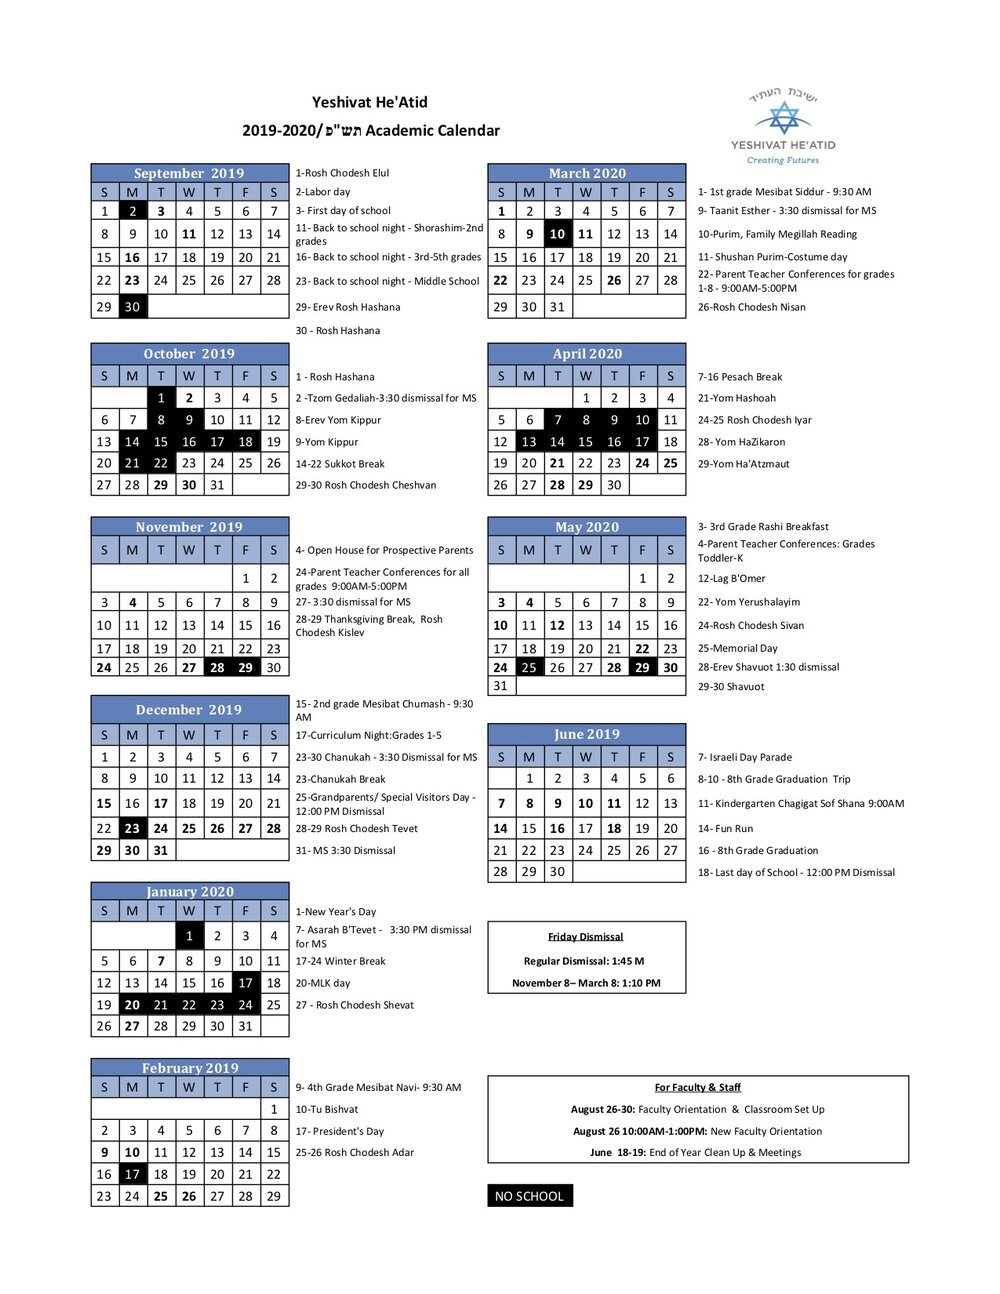 School Calendar — Yeshivat He'atid Throughout Academic Calender For Middlesex County College For 2021